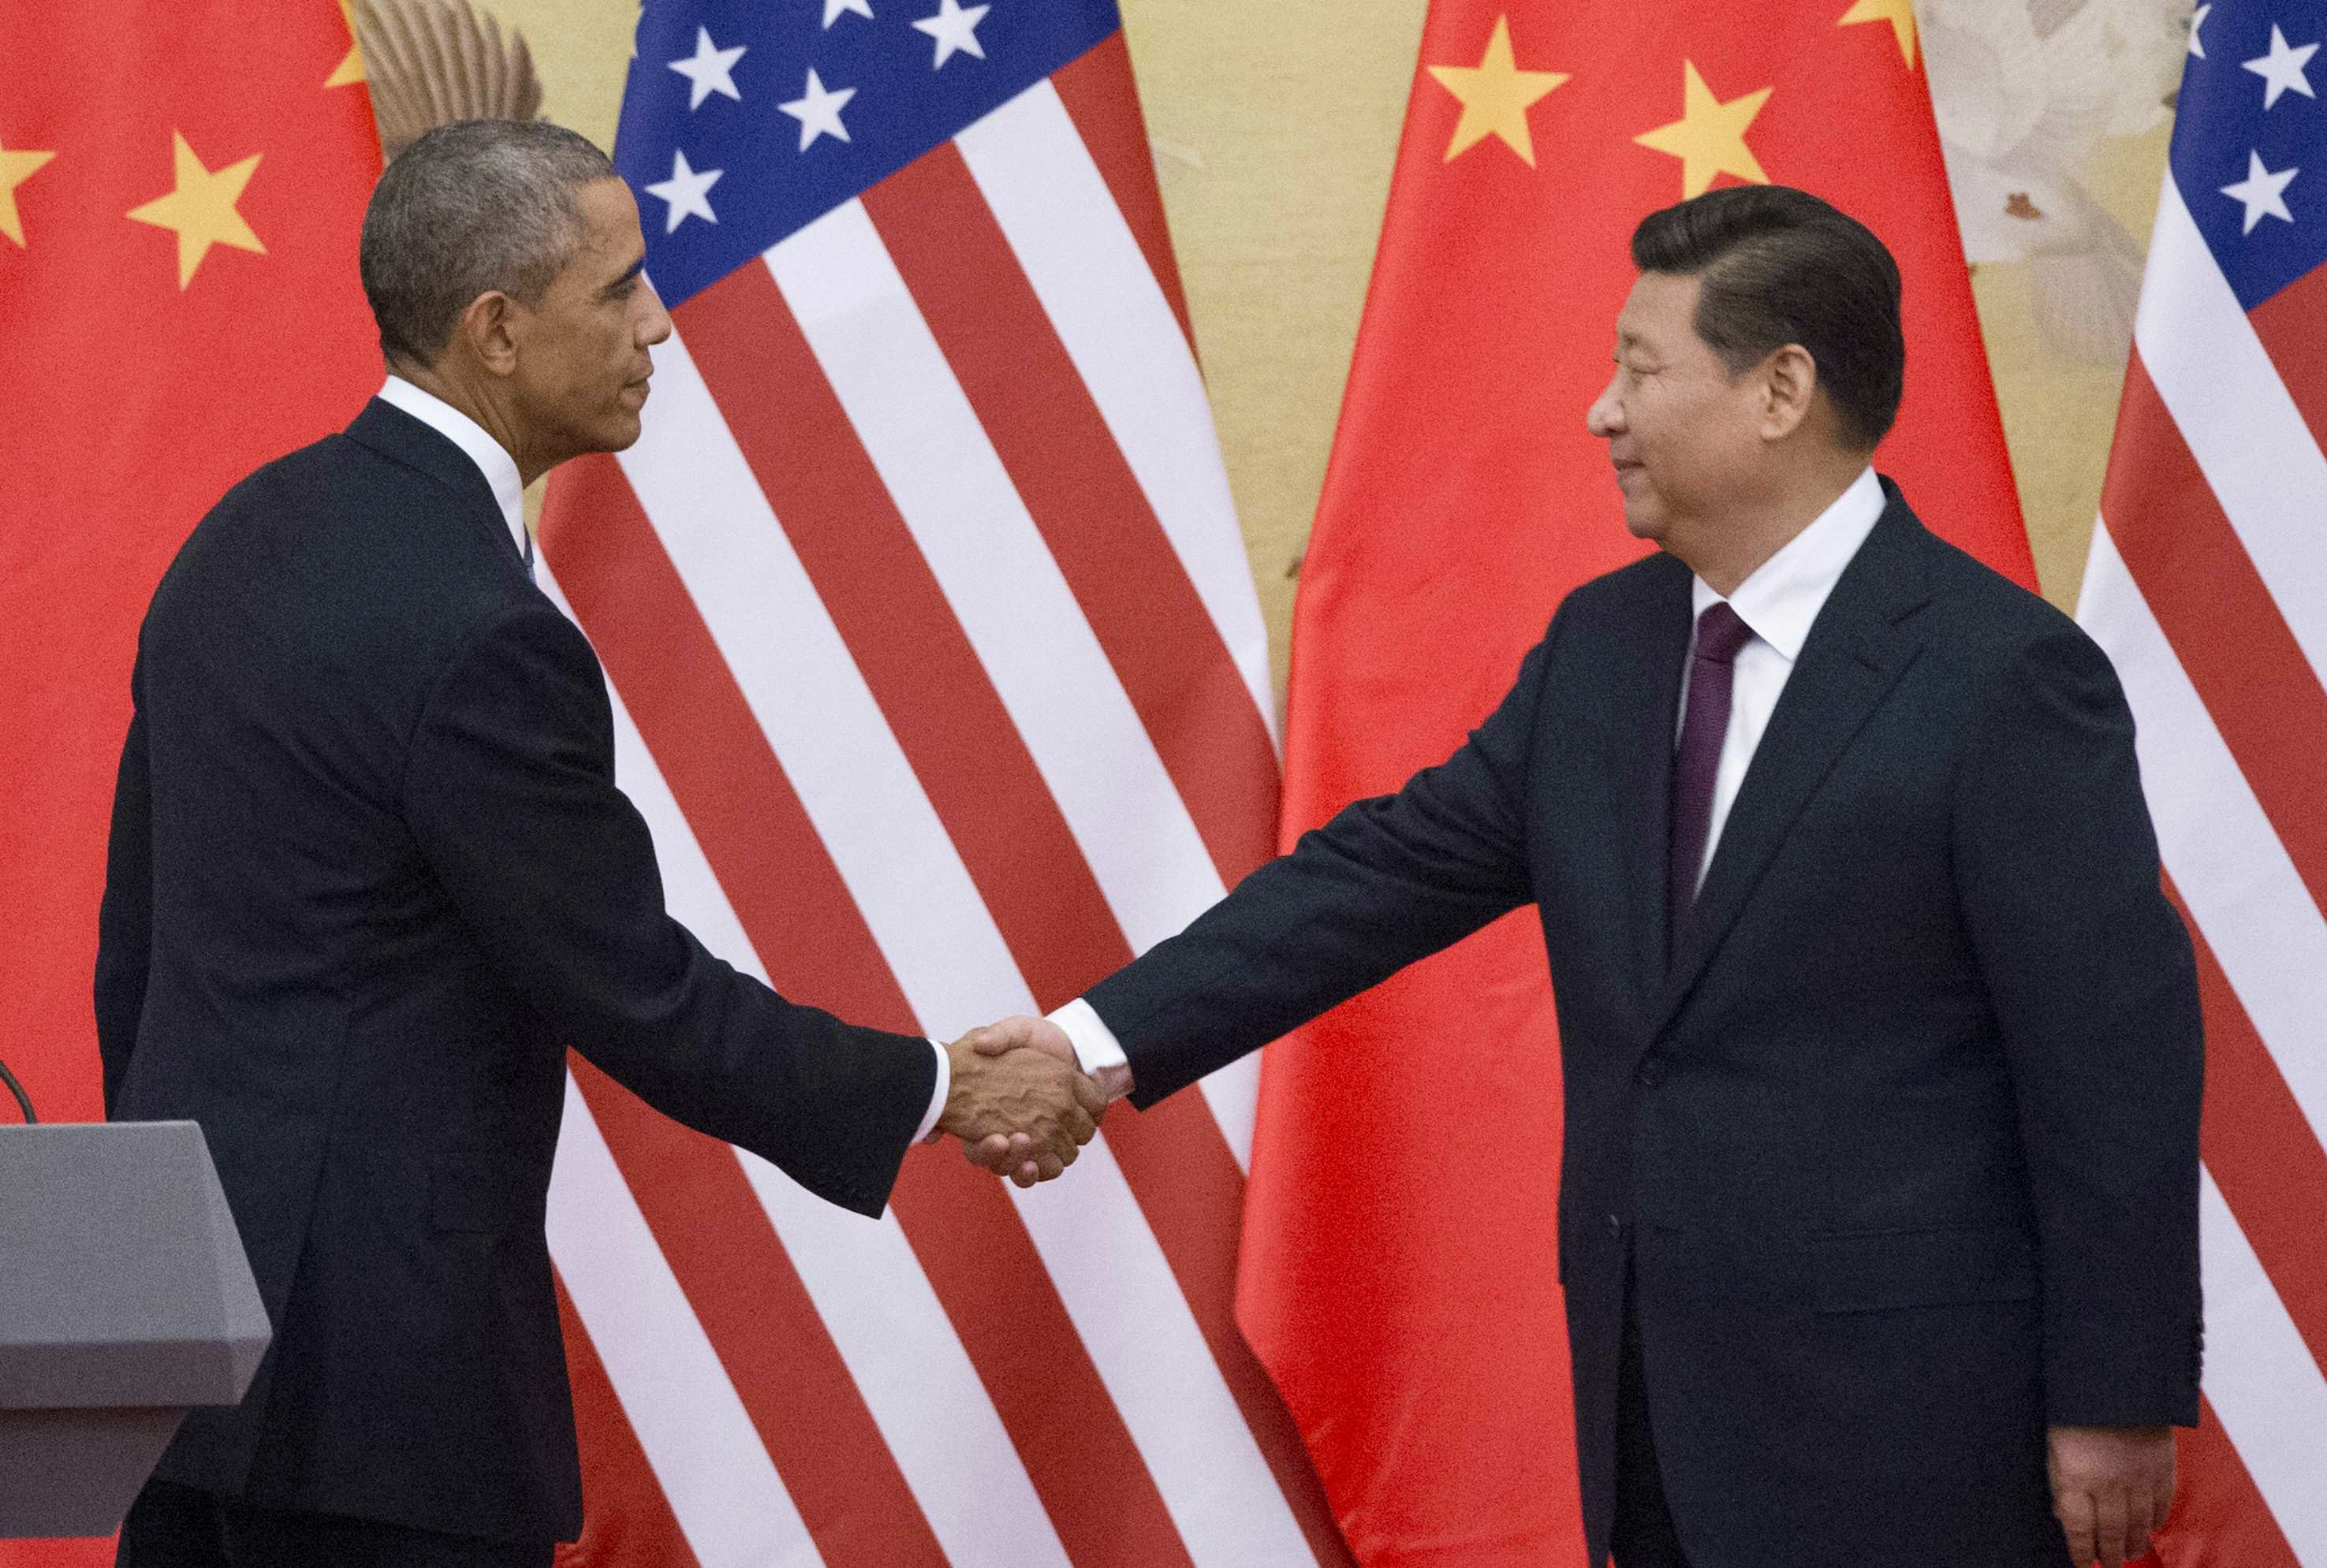 US President Barack Obama (L) and China's President Xi Jinping shake hands following a bilateral meeting  at the Great Hall of the People in Beijing on November 12, 2014.